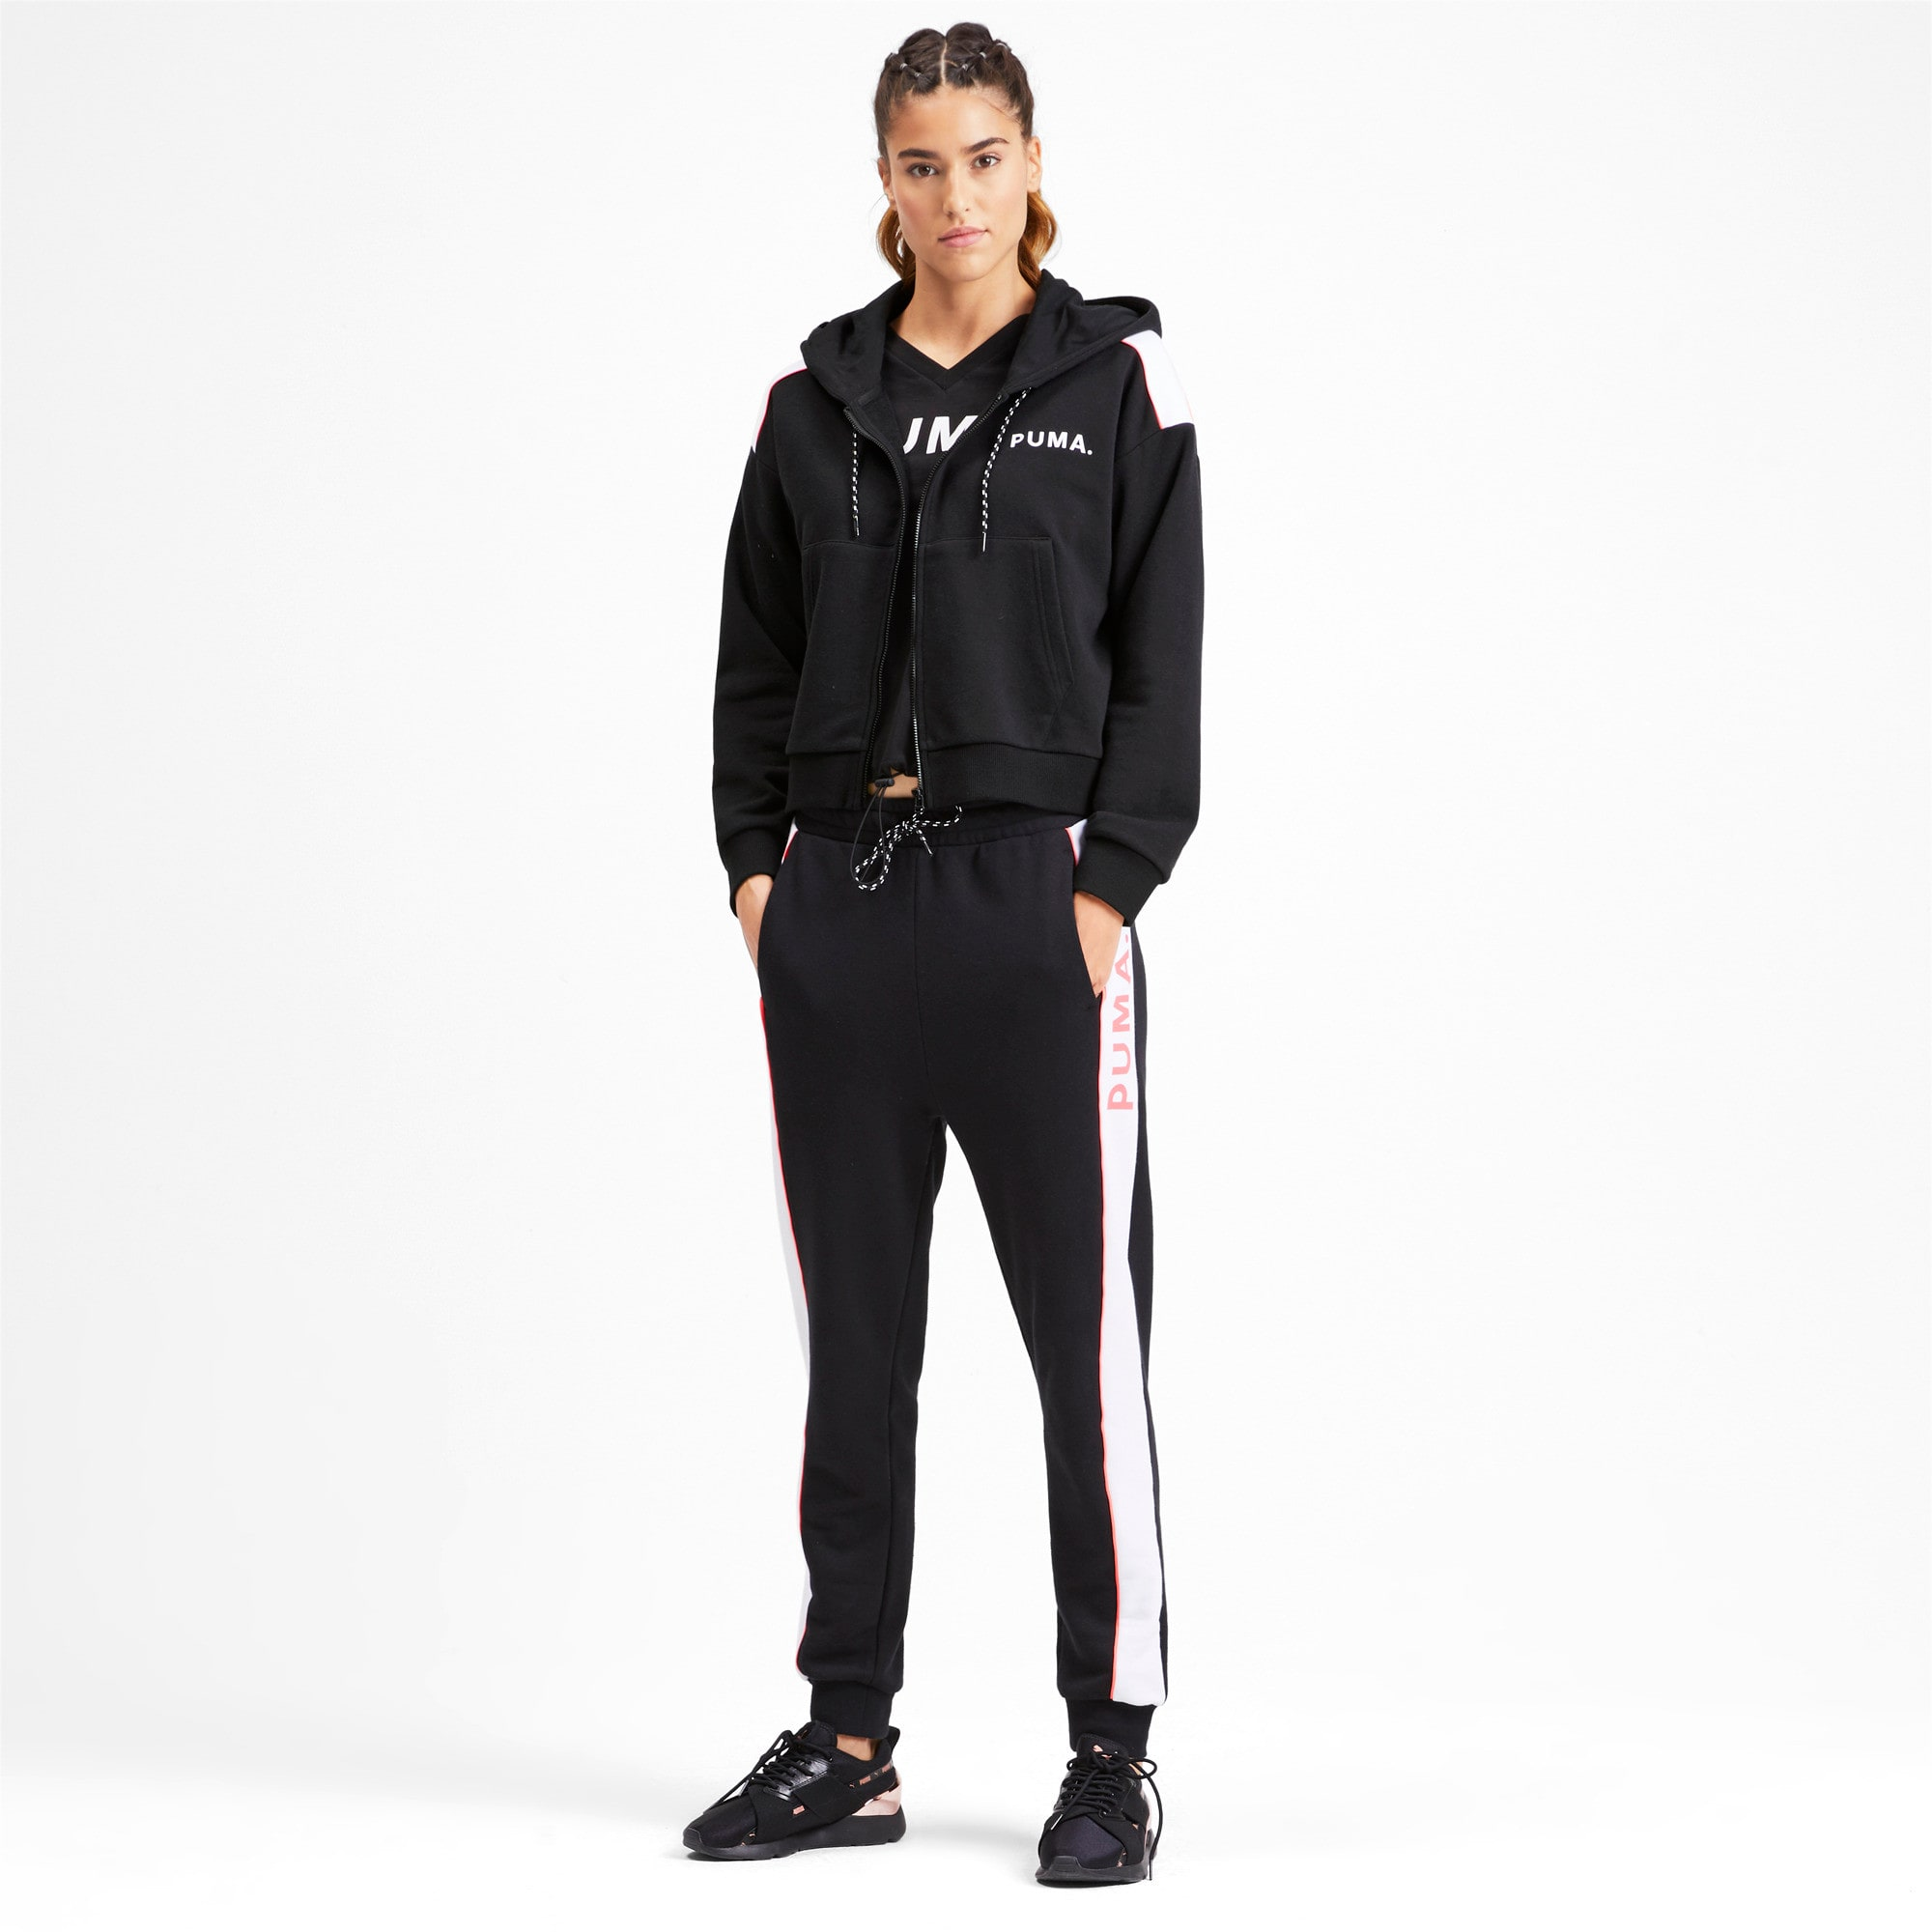 Chase Women's Cropped Full Zip Hoodie, Puma Black, large